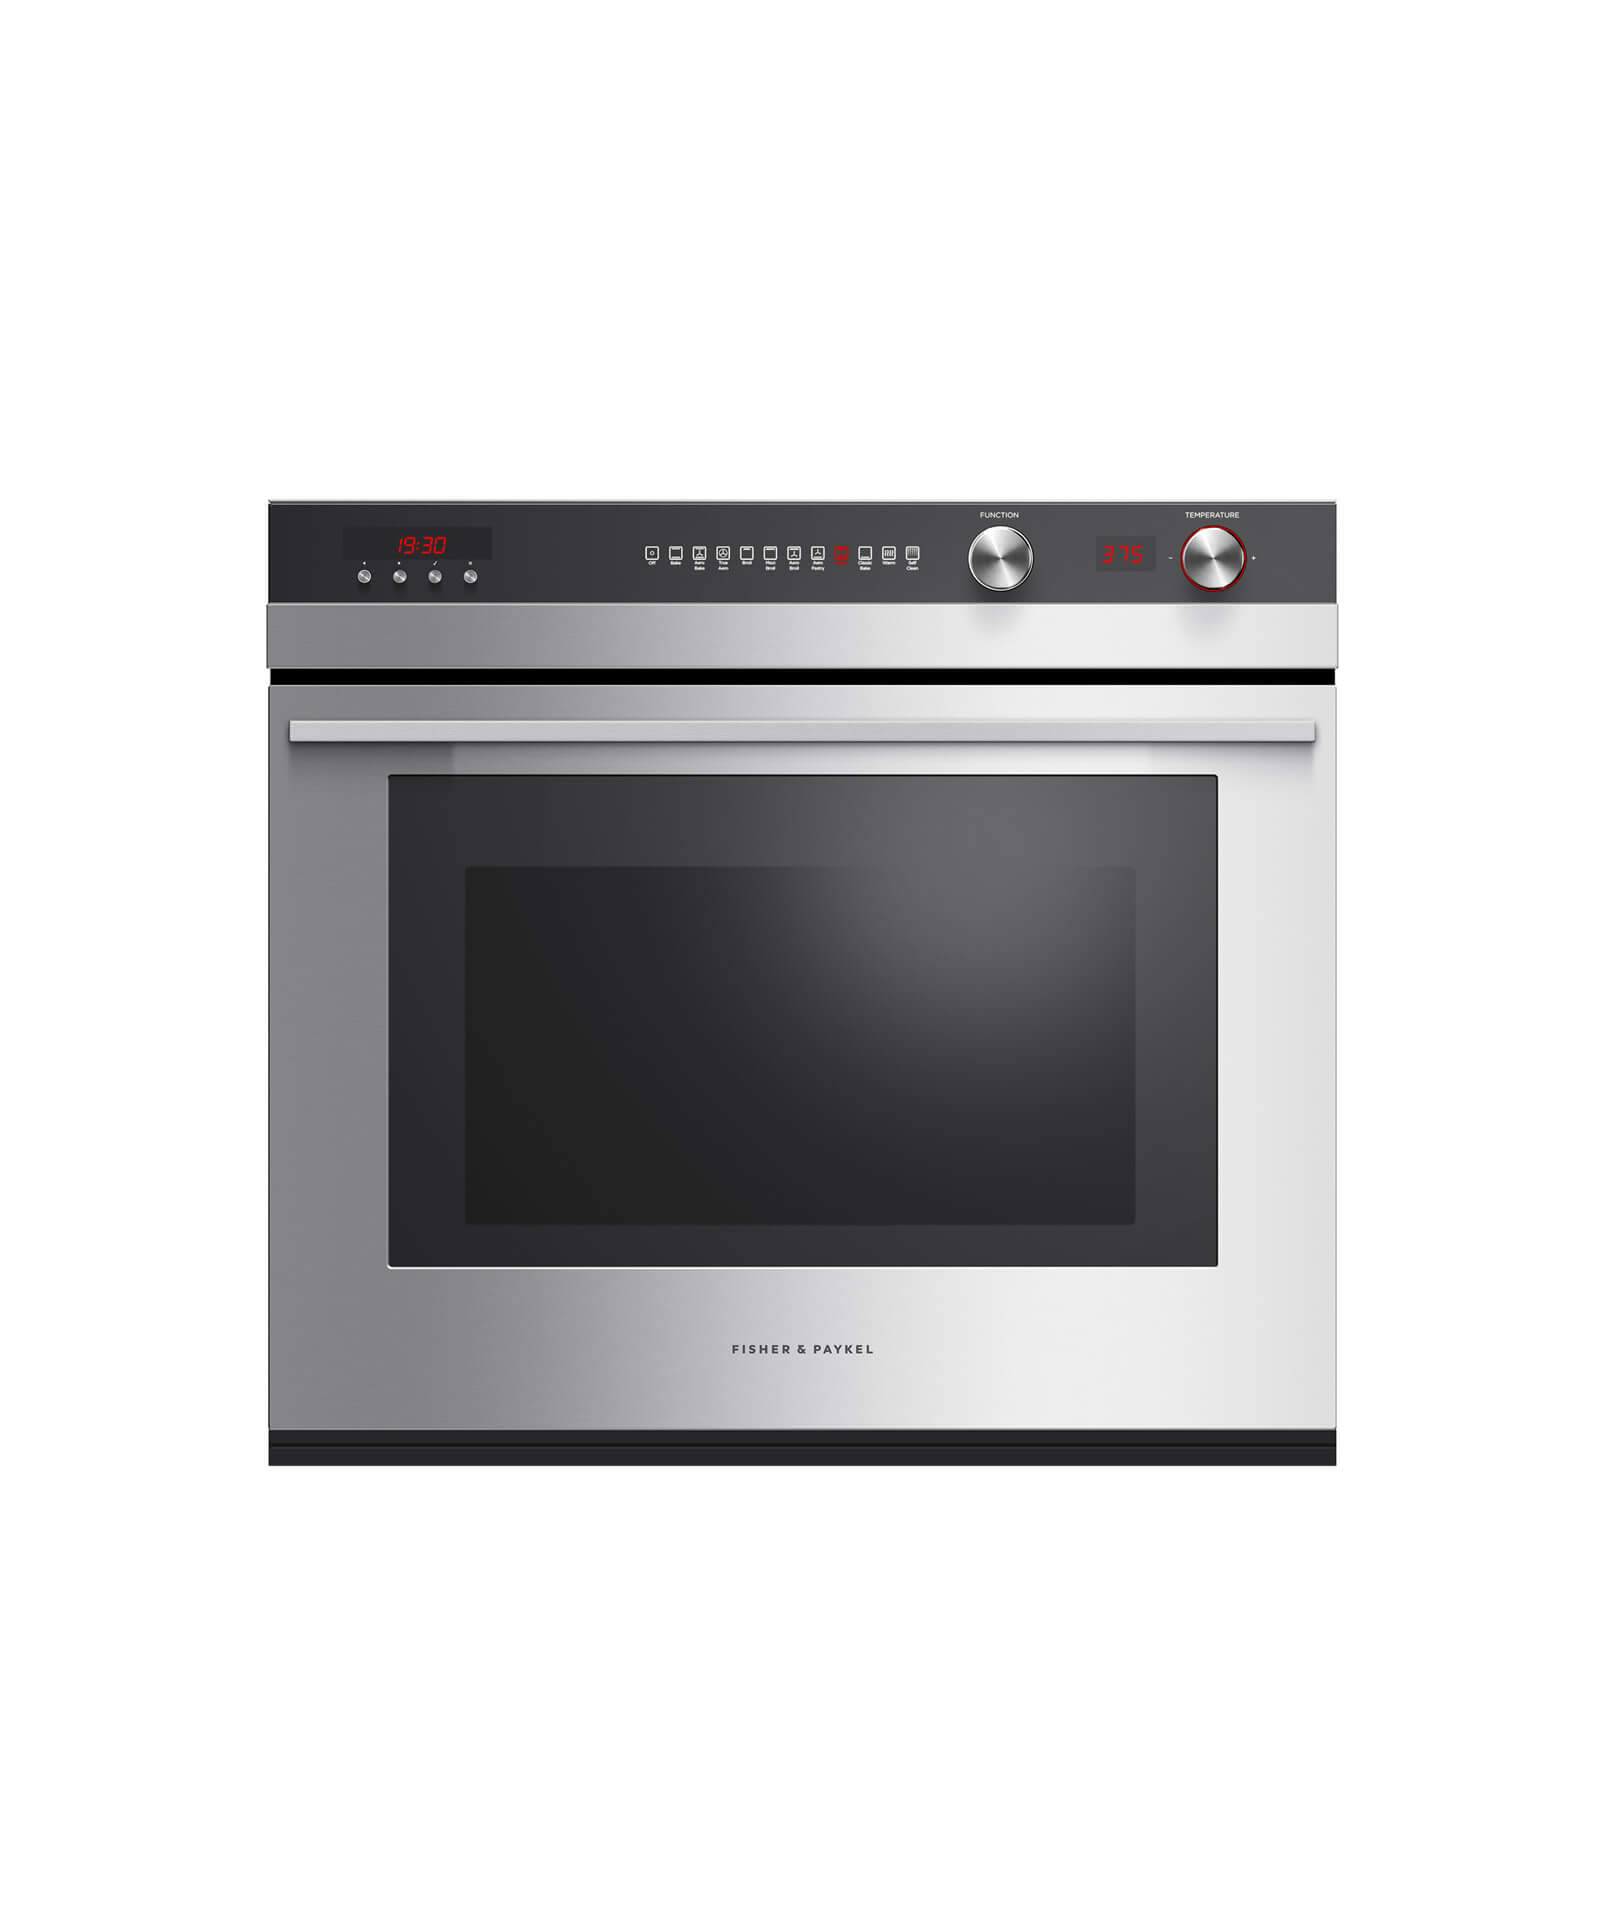 DISPLAY MODEL--Built-in Oven, 30 4.1 cu ft, 11 Function